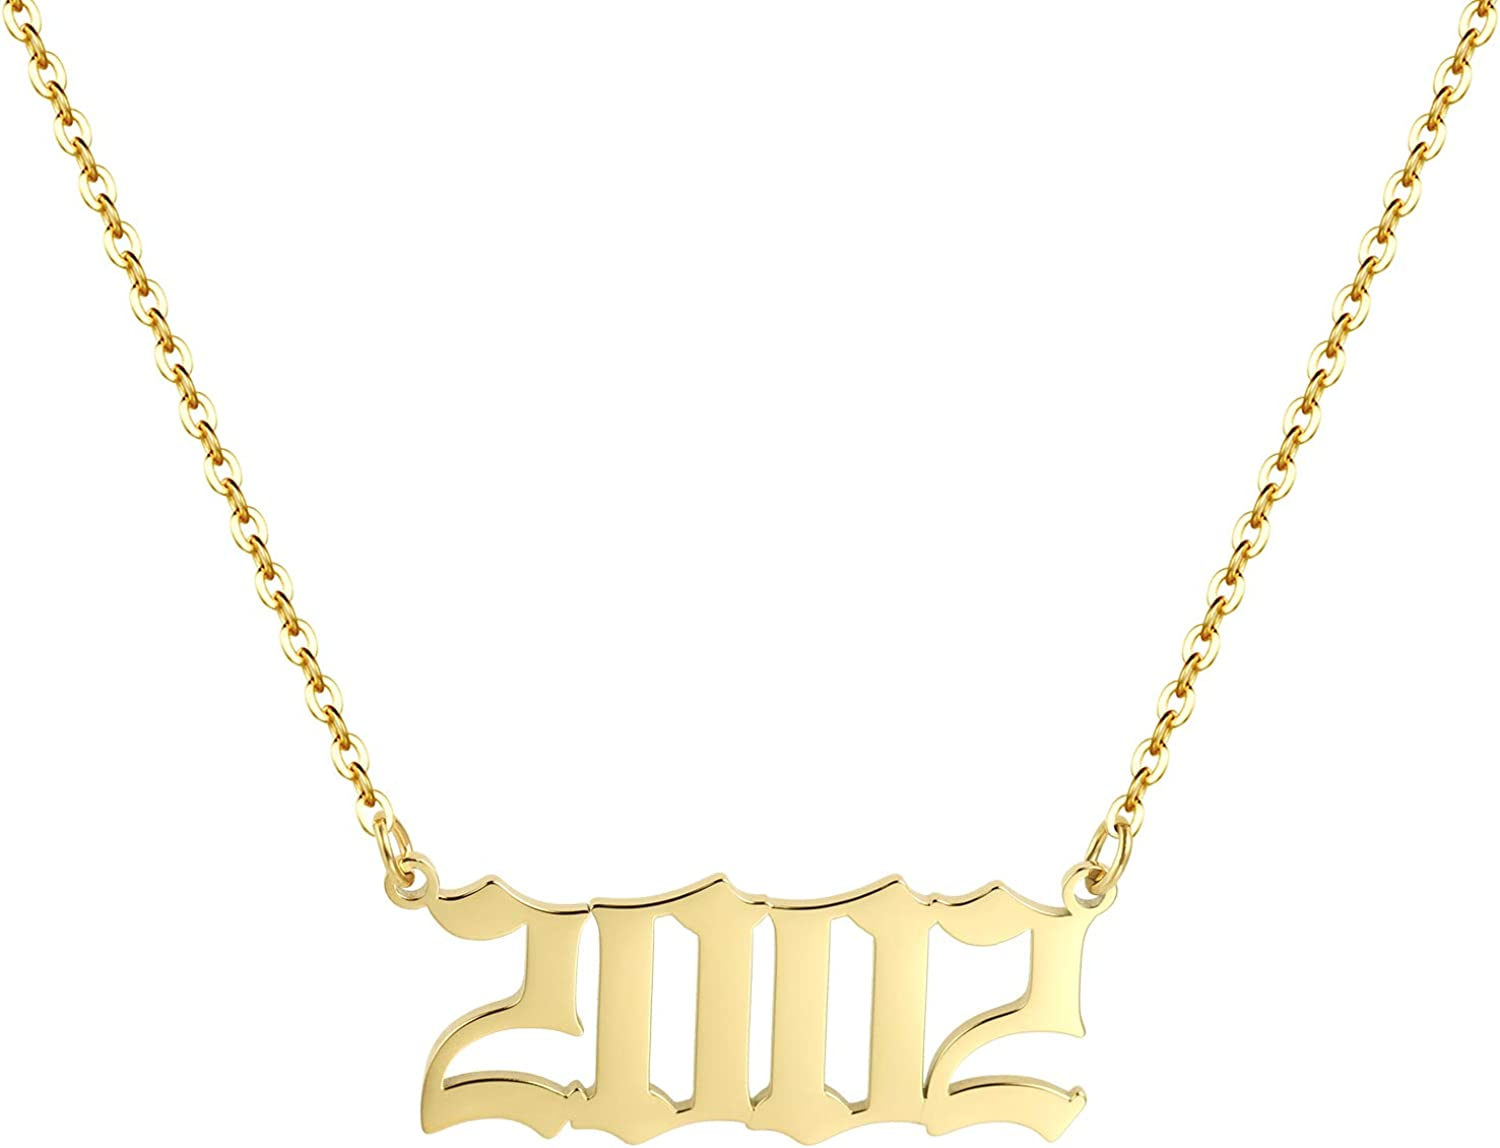 Aimber Birth Year Necklace 18K Gold Plated Birth Year Number Pendant Necklace Stainless Steel Birthday Year Necklace for Women,1970-2024